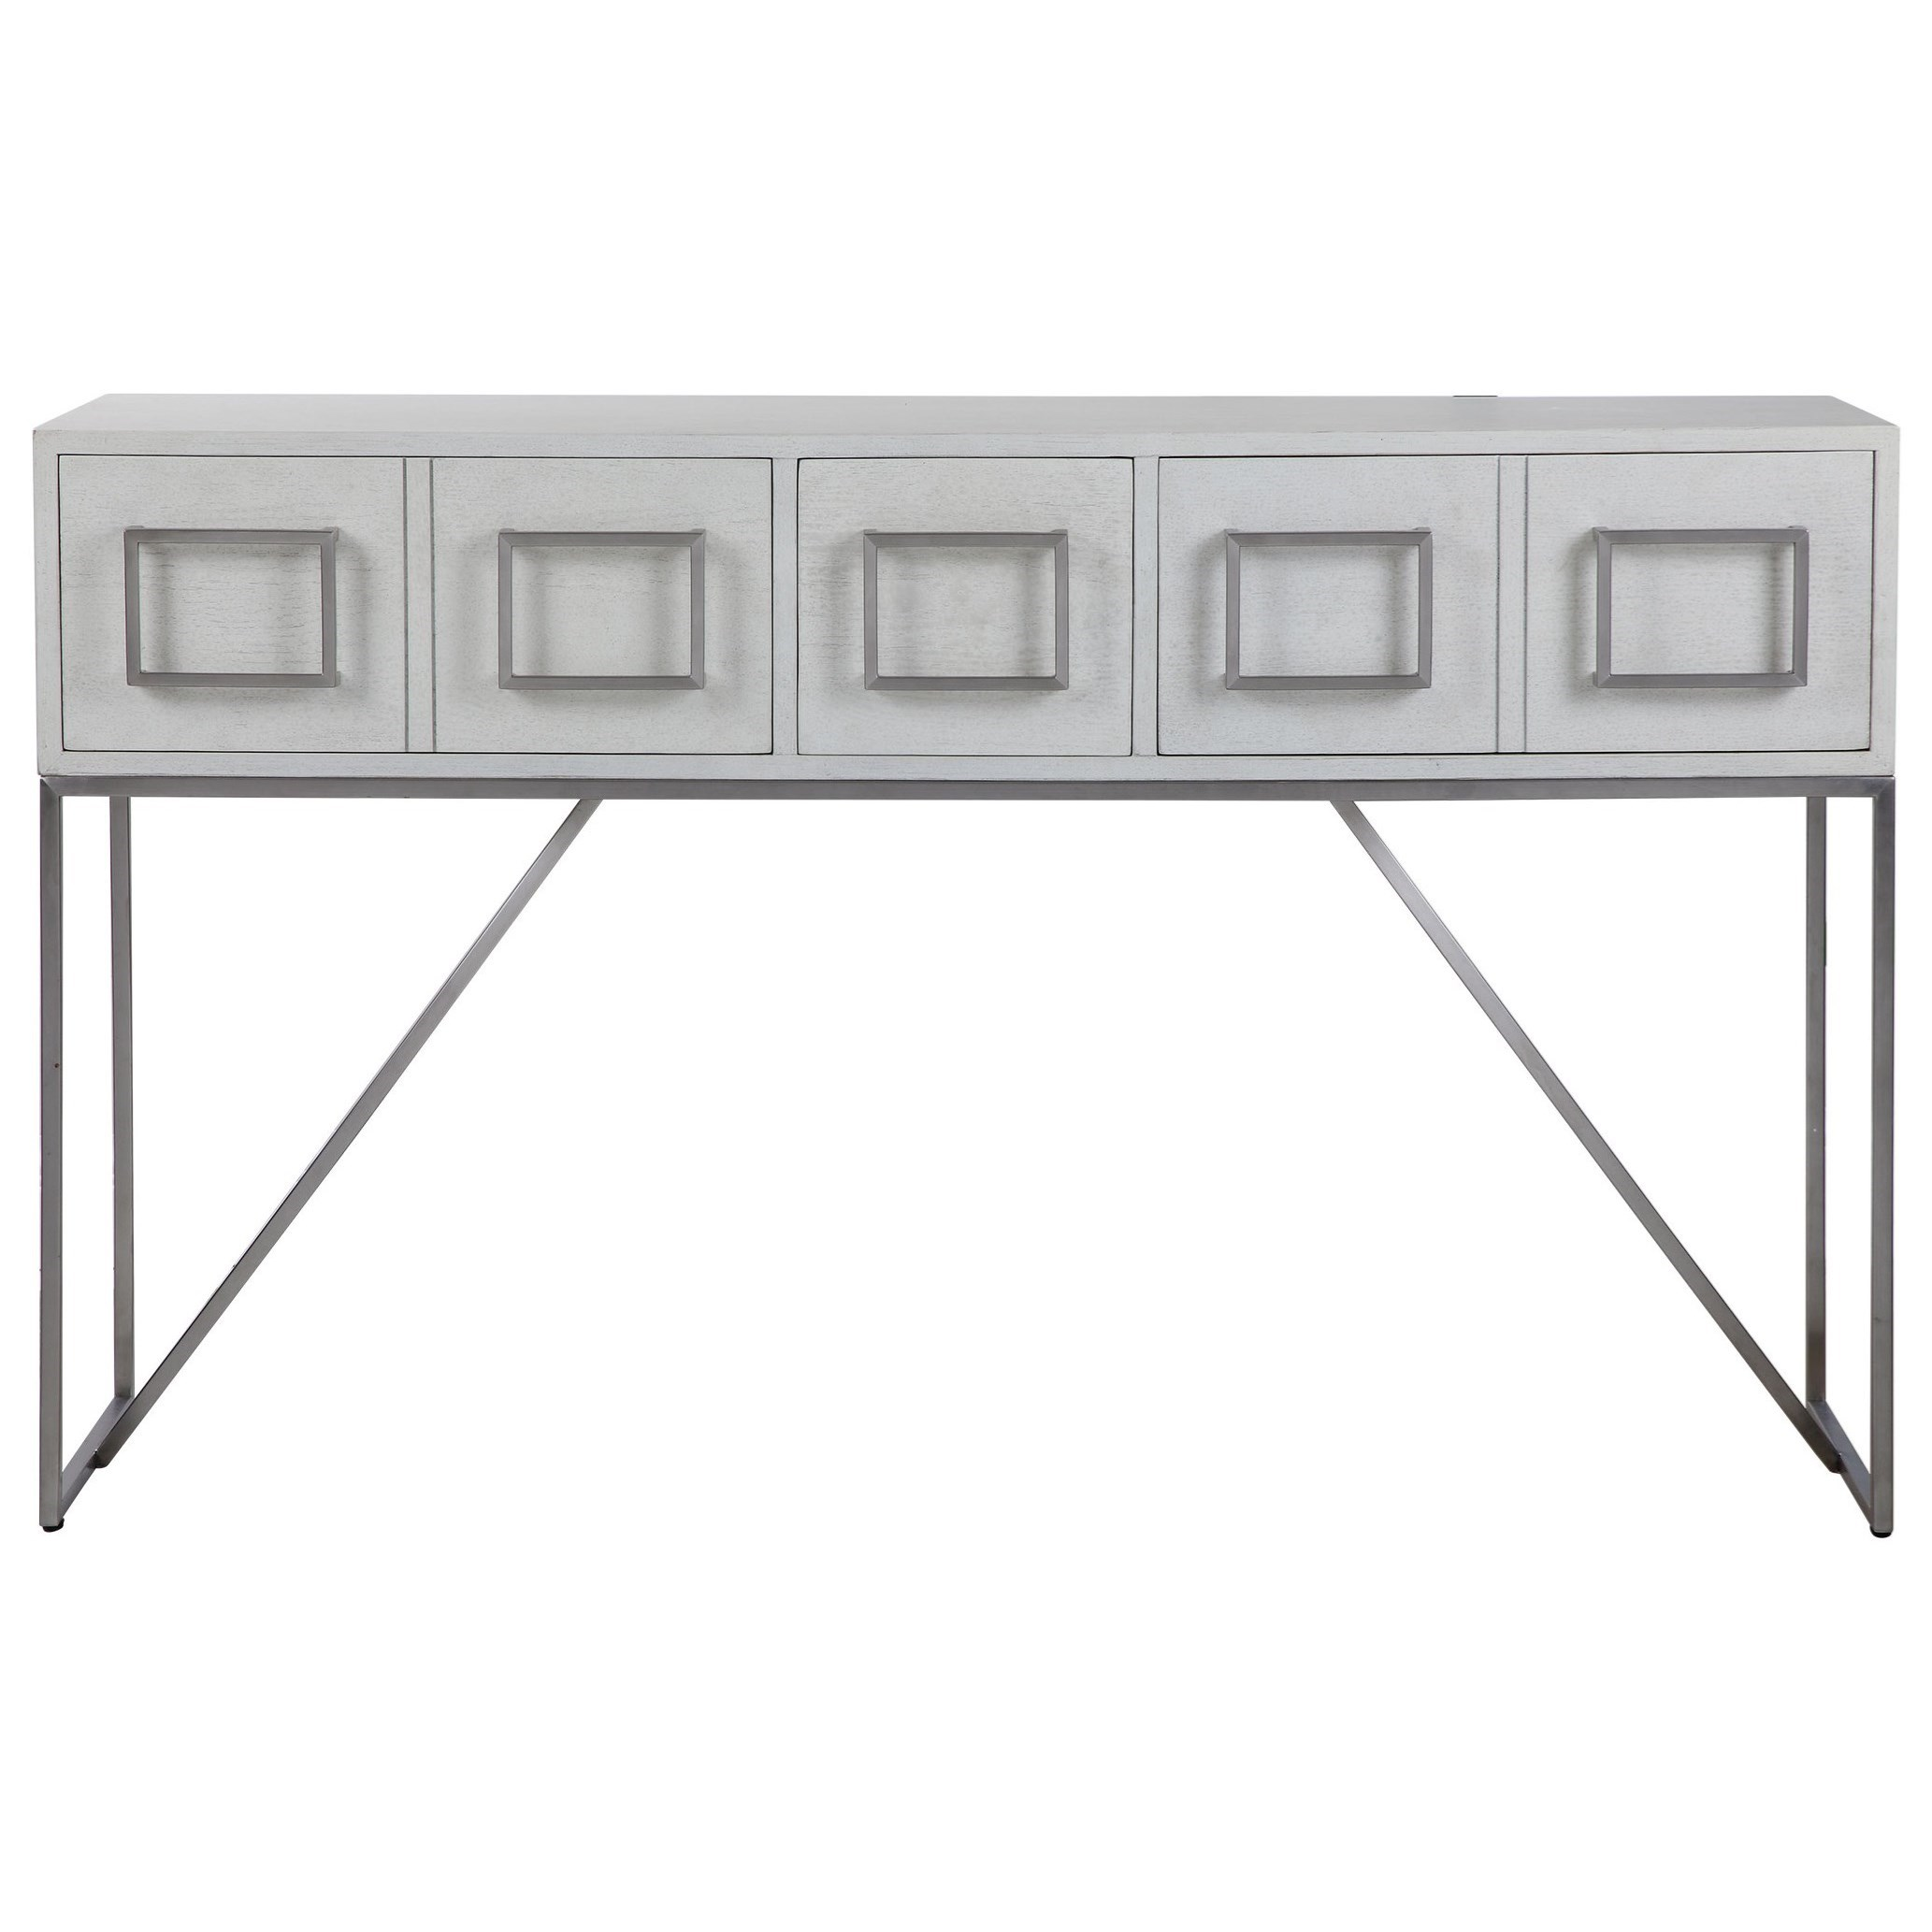 Accent Furniture - Occasional Tables Abaya White Console Table by Uttermost at Mueller Furniture